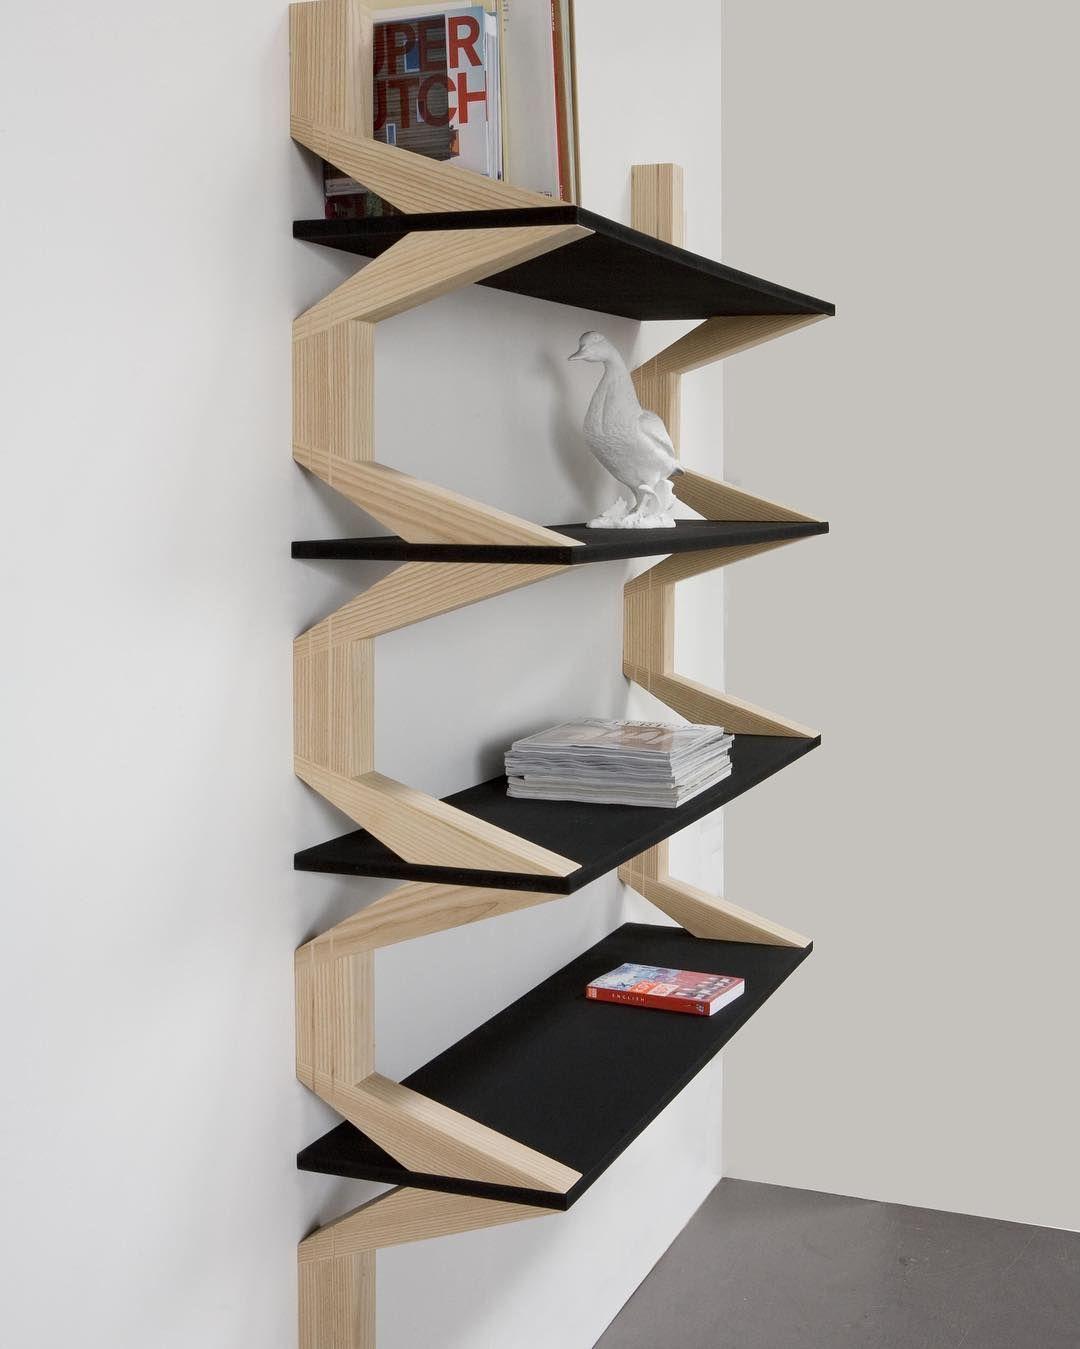 Pacman Shelves By Sarah Trenitã© #p_roduct • #product